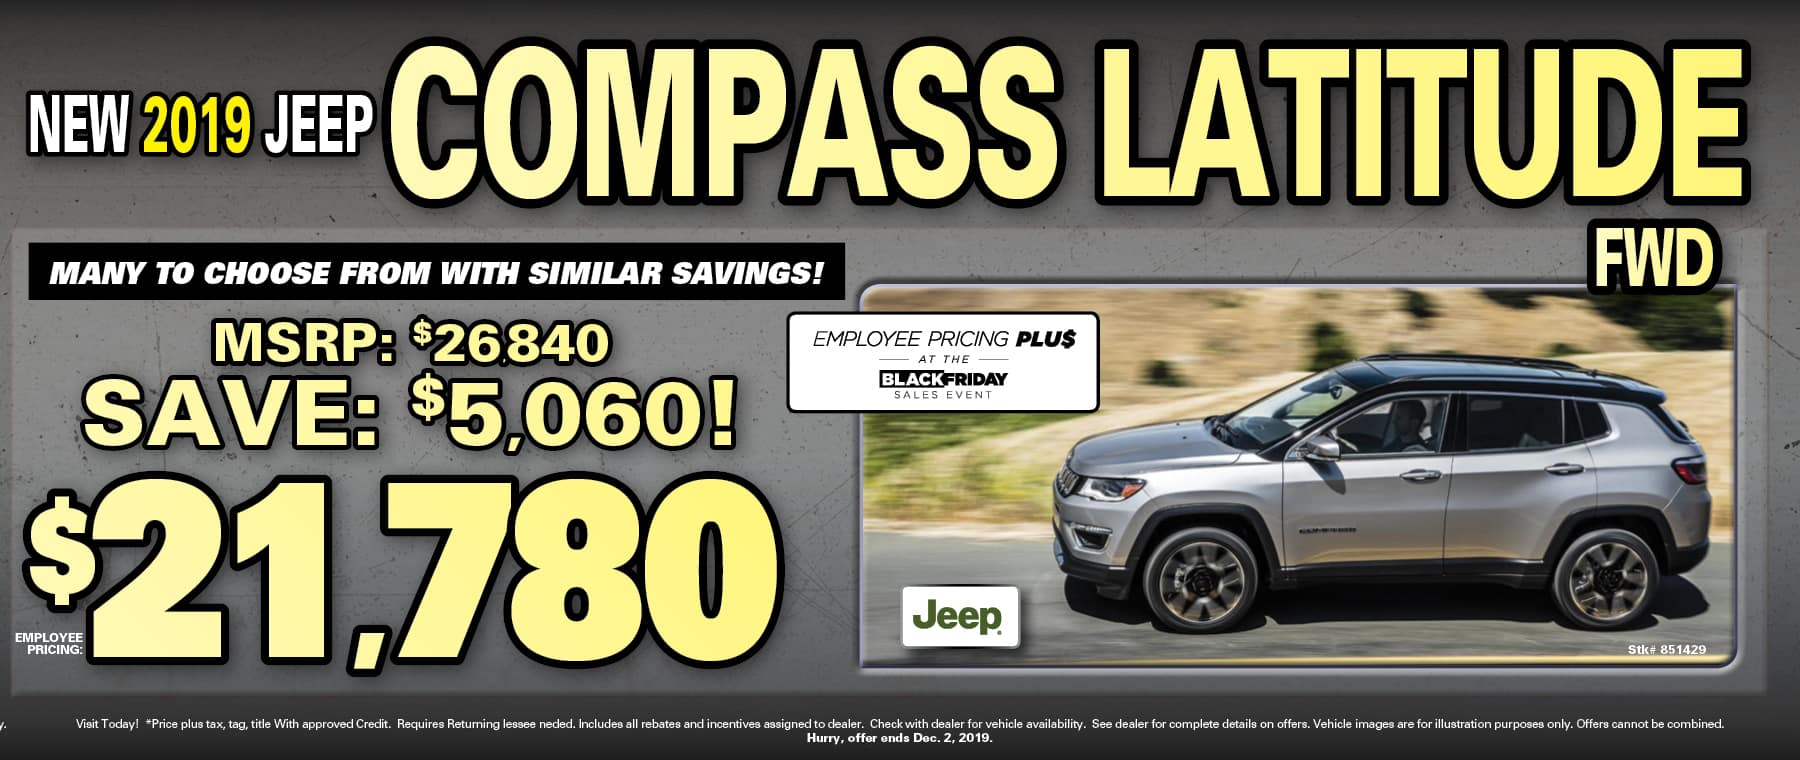 Compass Employee Pricing